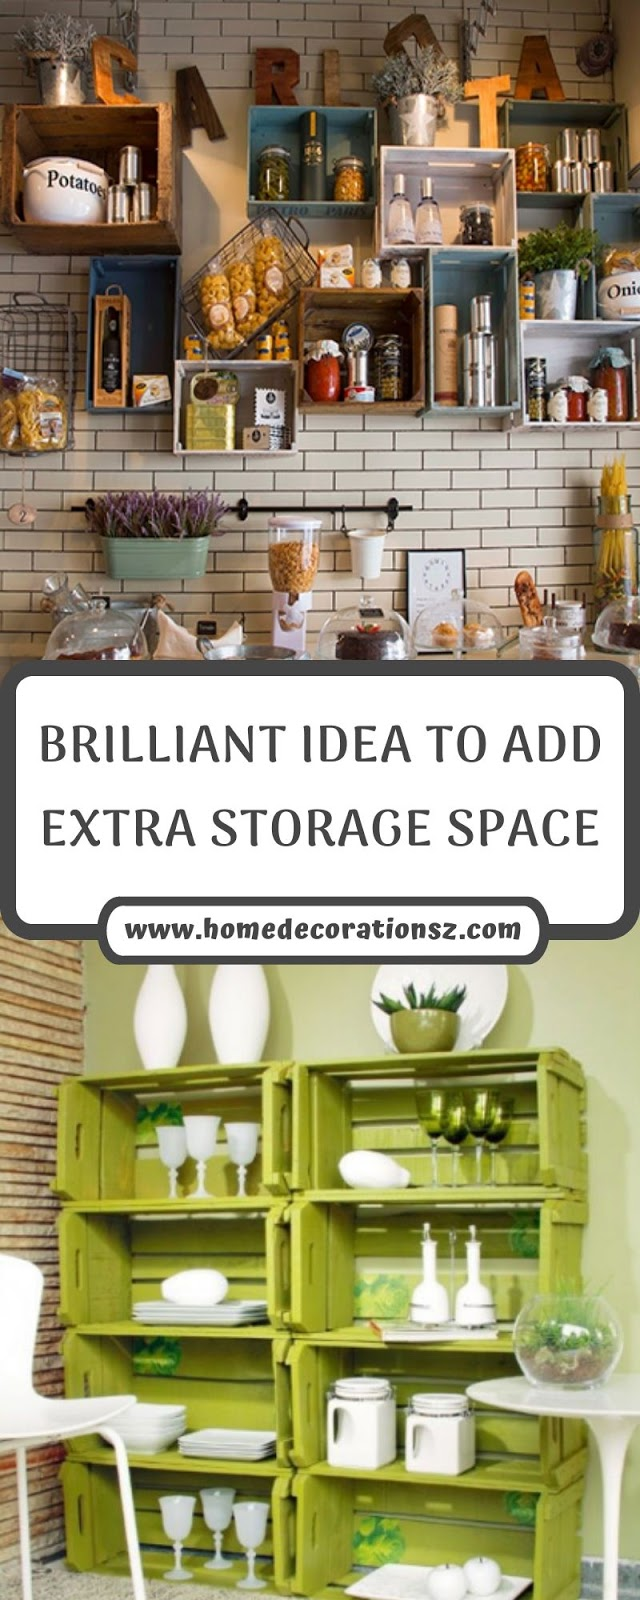 BRILLIANT IDEA TO ADD EXTRA STORAGE SPACE